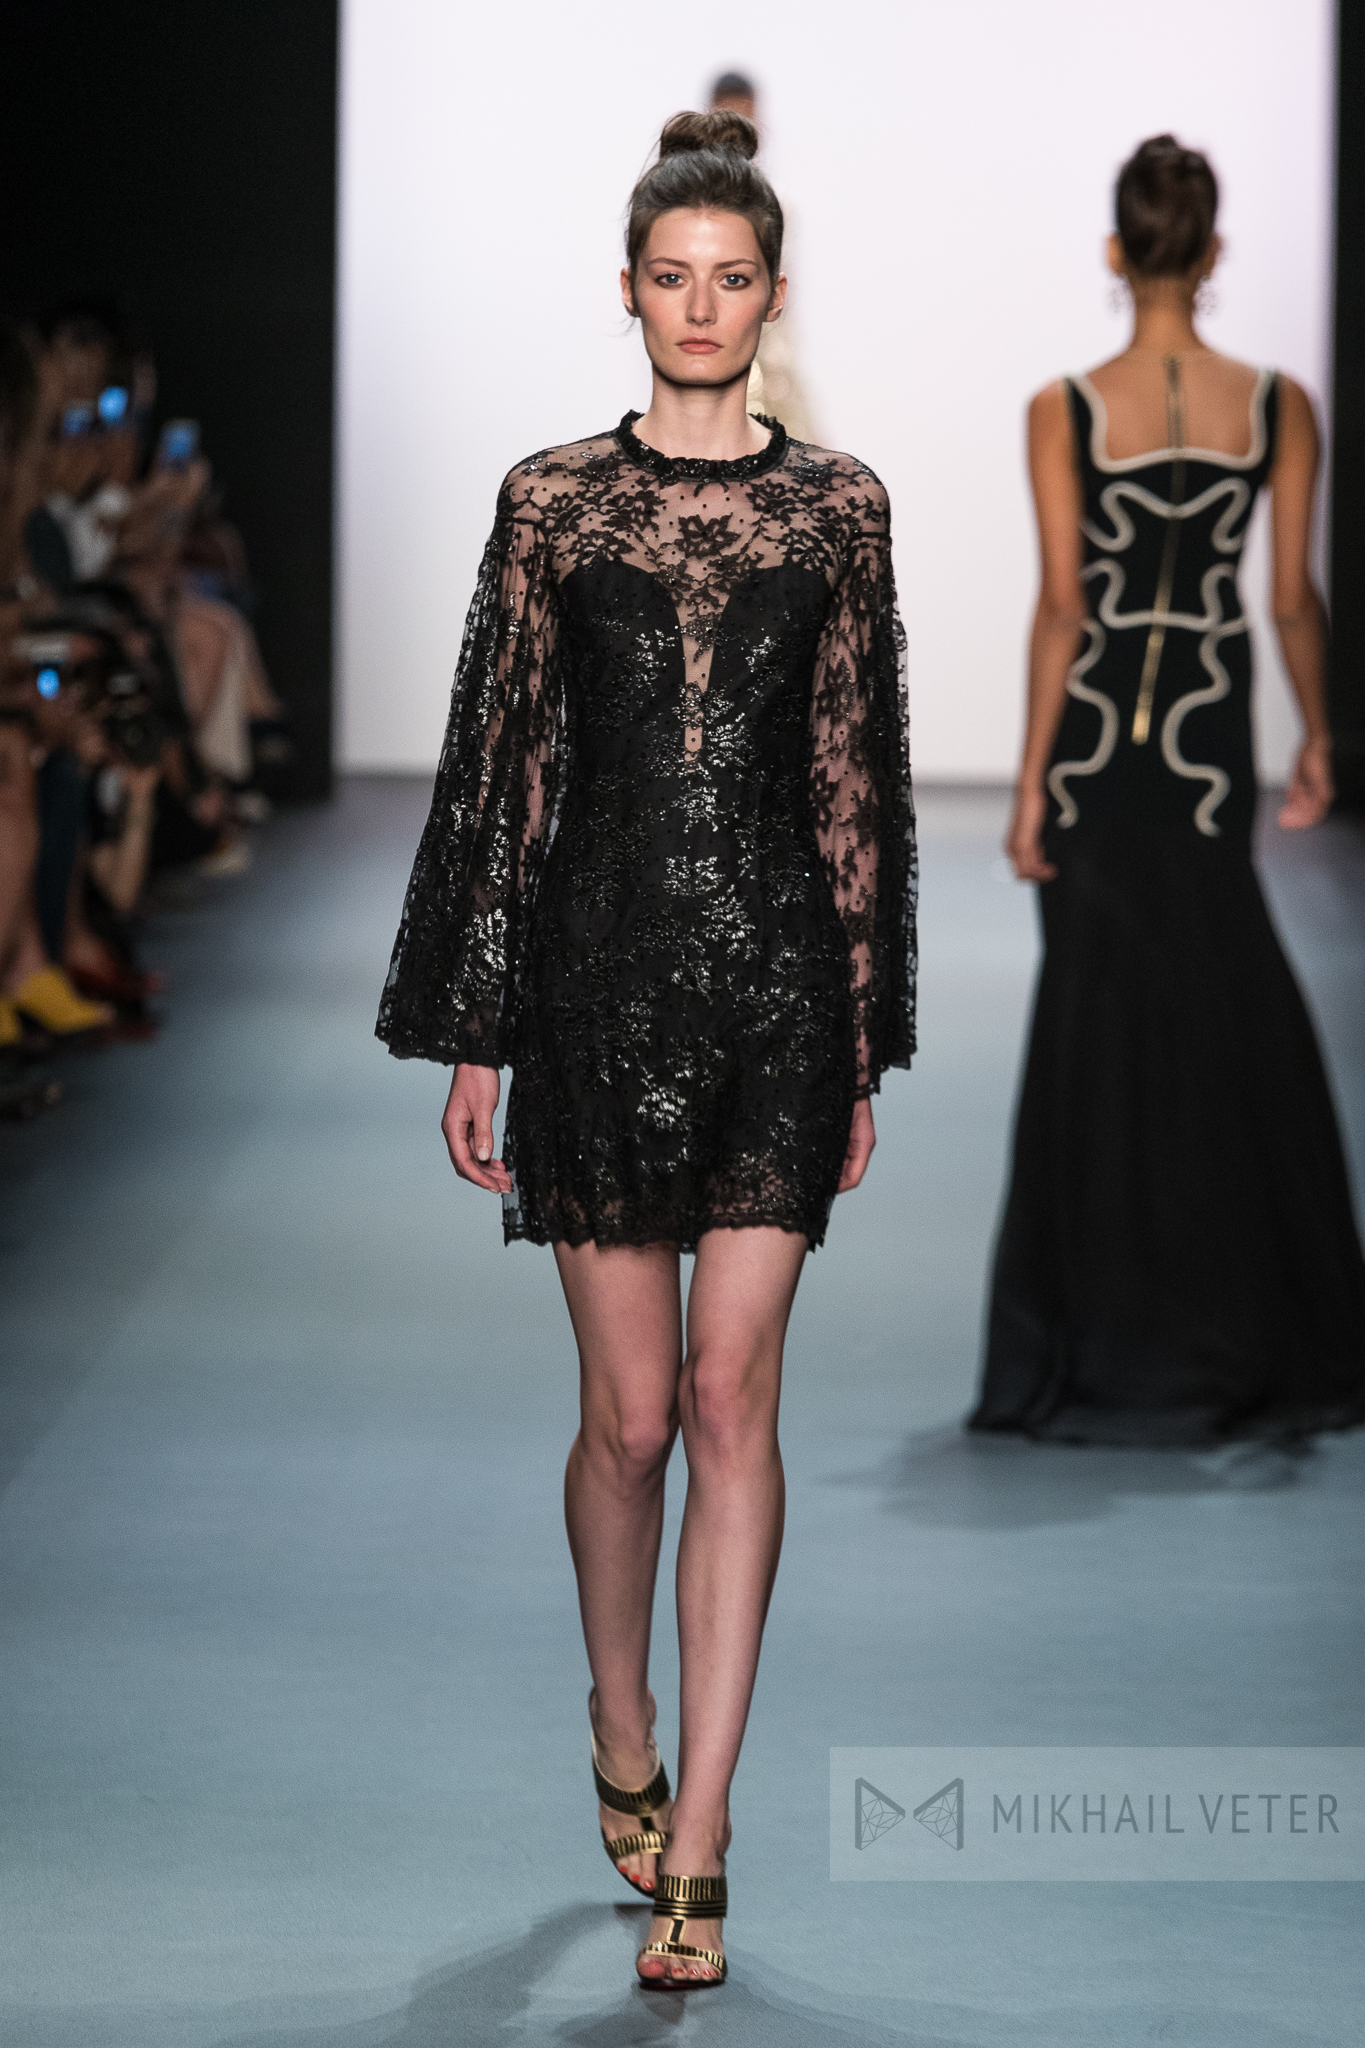 jenny-packham-new-york-fashion-week-0261